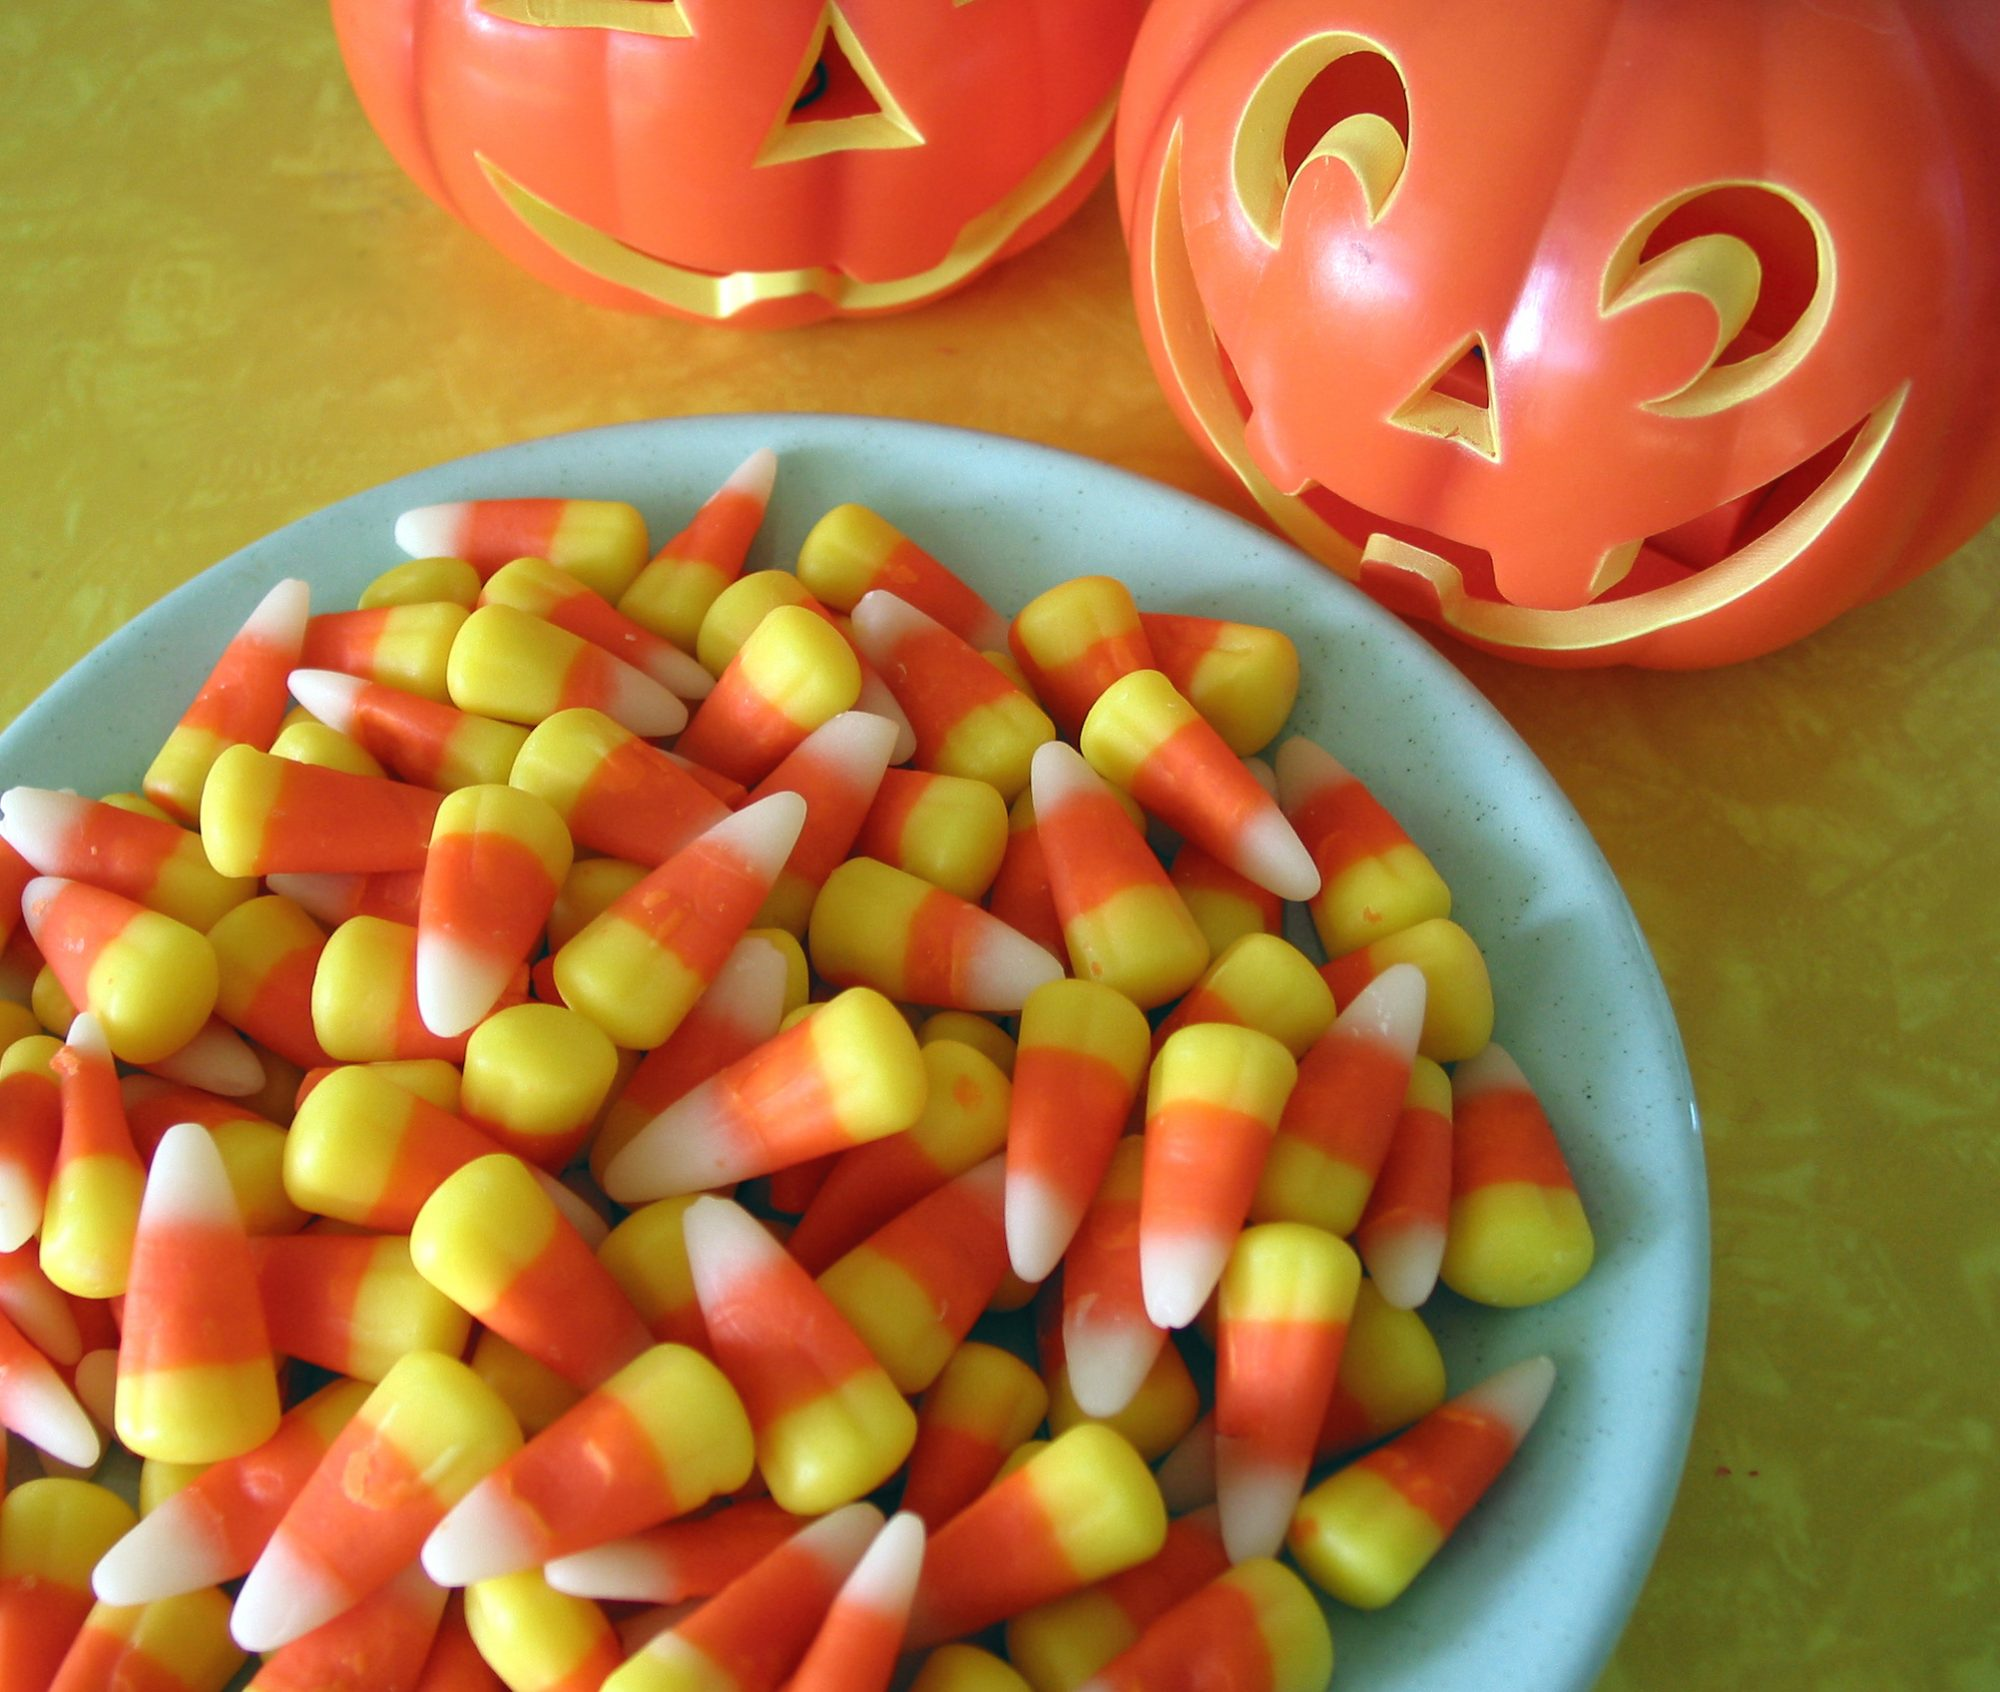 Candy Corn Halloween Getty 8/20/20